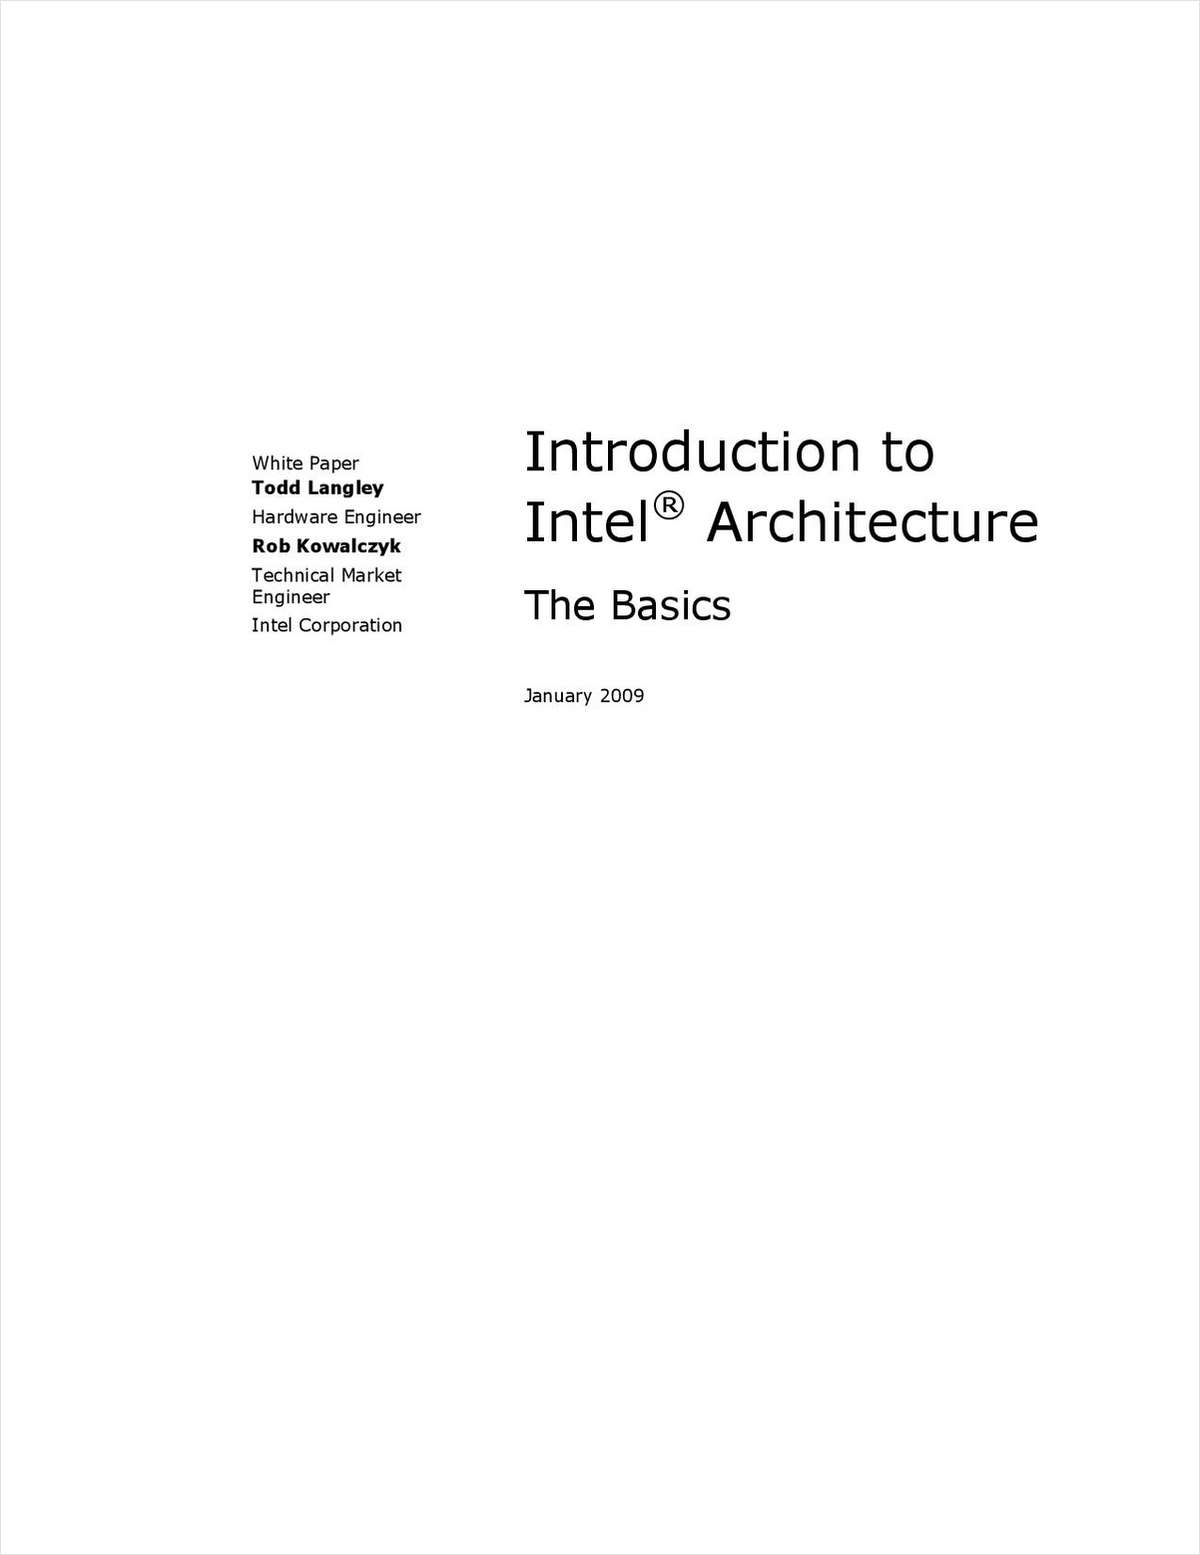 An Introduction to Intel® Architecture: The Basics